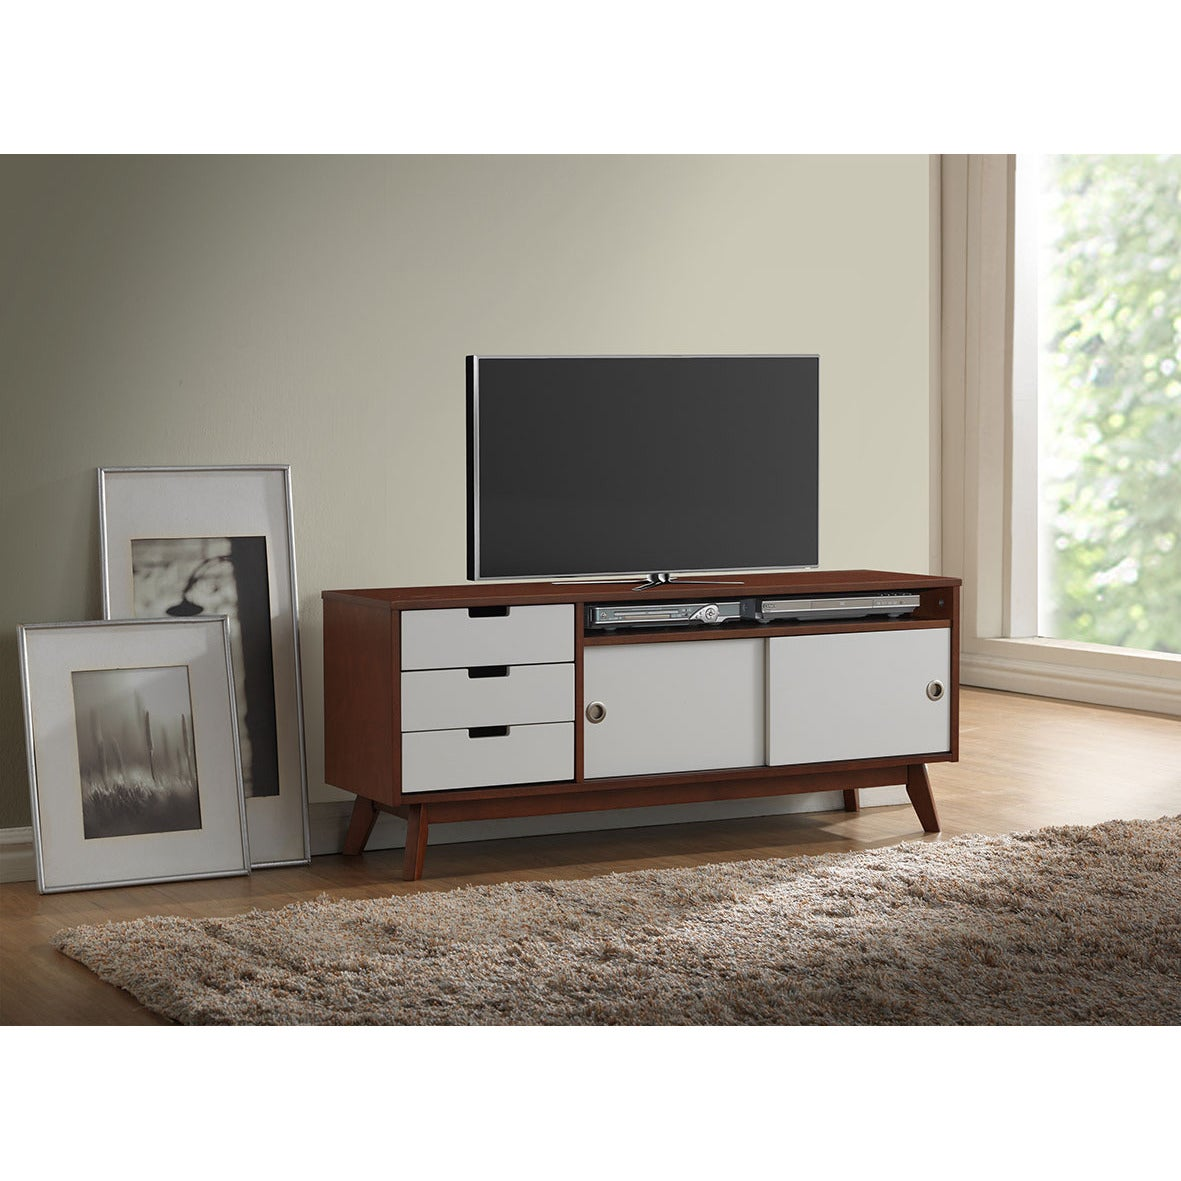 century console units stand modern cabinet mid shelving stylish wooden tv designs wall unit mounted over